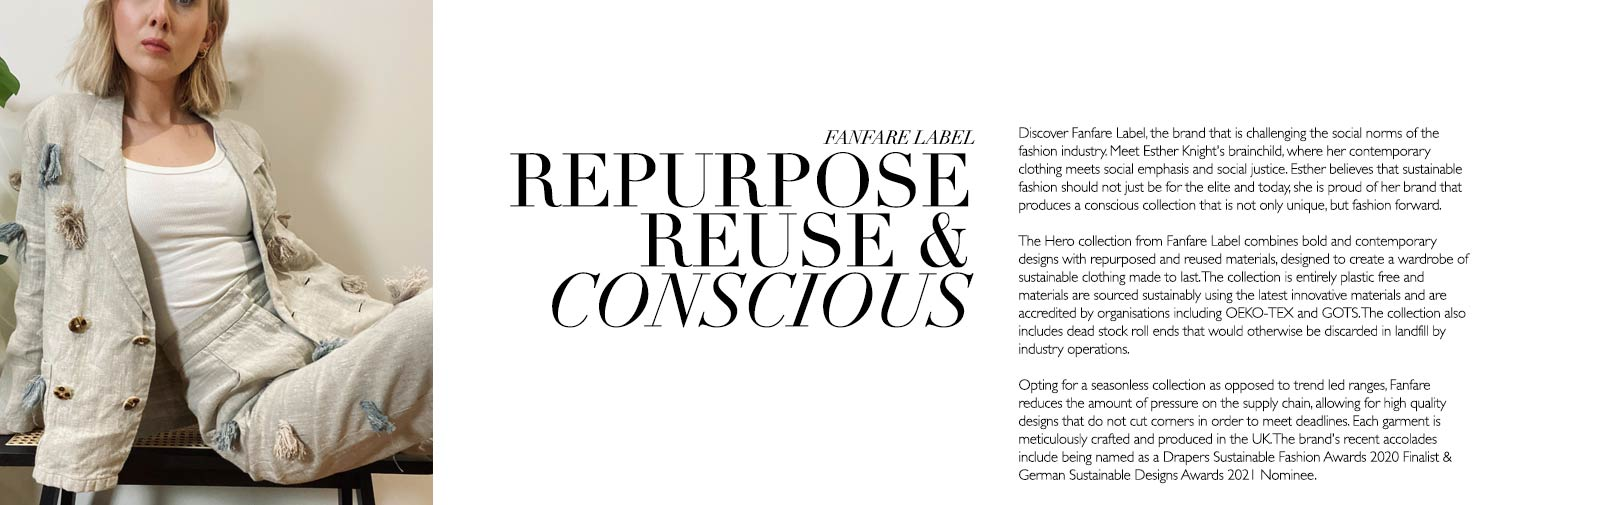 FANFARE LABEL - REPURPOSE REUSE & CONSCIOUS - Discover Fanfare Label, the brand that is challenging the social norms of the fashion industry. Meet Esther Knight's brainchild, where her contemporary clothing meets social emphasis and social justice. Esther believes that sustainable fashion should not just be for the elite and today, she is proud of her brand that produces a conscious collection that is not only unique, but fashion forward.   The Hero collection from Fanfare Label combines bold and contemporary designs with repurposed and reused materials, designed to create a wardrobe of sustainable clothing made to last. The collection is entirely plastic free and materials are sourced sustainably using the latest innovative materials and are accredited by organisations including OEKO-TEX and GOTS. The collection also includes dead stock roll ends that would otherwise be discarded in landfill by industry operations.  Opting for a seasonless collection as opposed to trend led ranges, Fanfare reduces the amount of pressure on the supply chain, allowing for high quality designs that do not cut corners in order to meet deadlines. Each garment is meticulously crafted and produced in the UK. The brand's recent accolades include being named as a Drapers Sustainable Fashion Awards 2020 Finalist & German Sustainable Designs Awards 2021 Nominee.